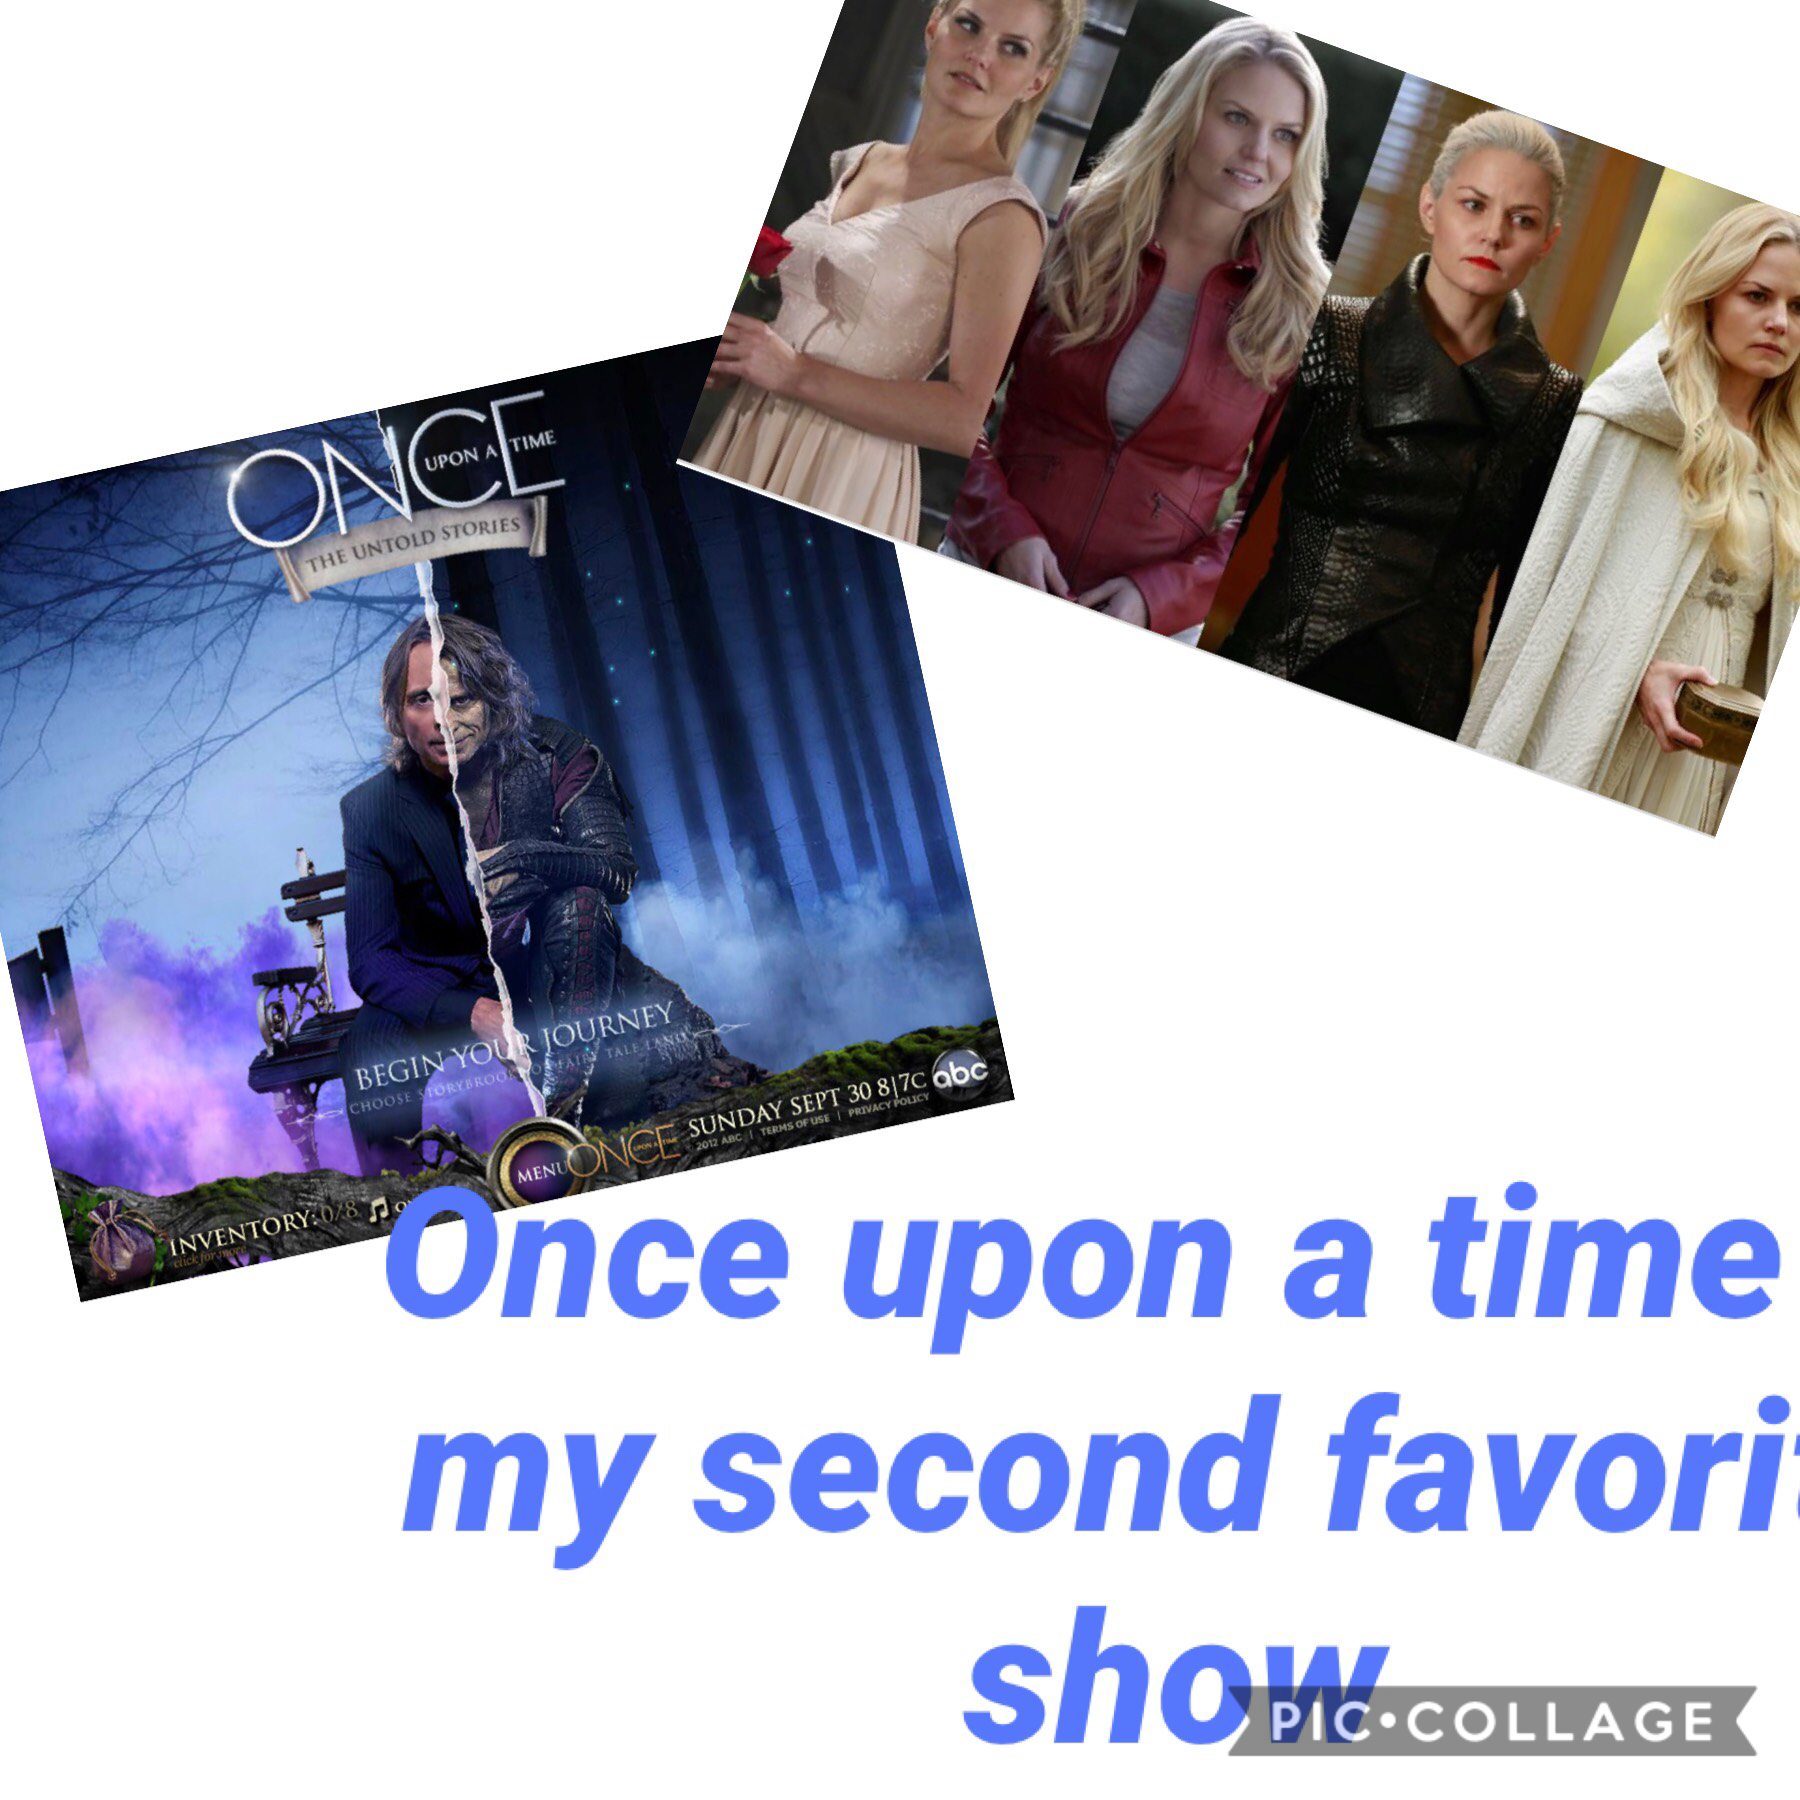 Once upon a time is my second favorite show!!!🖤💜💙